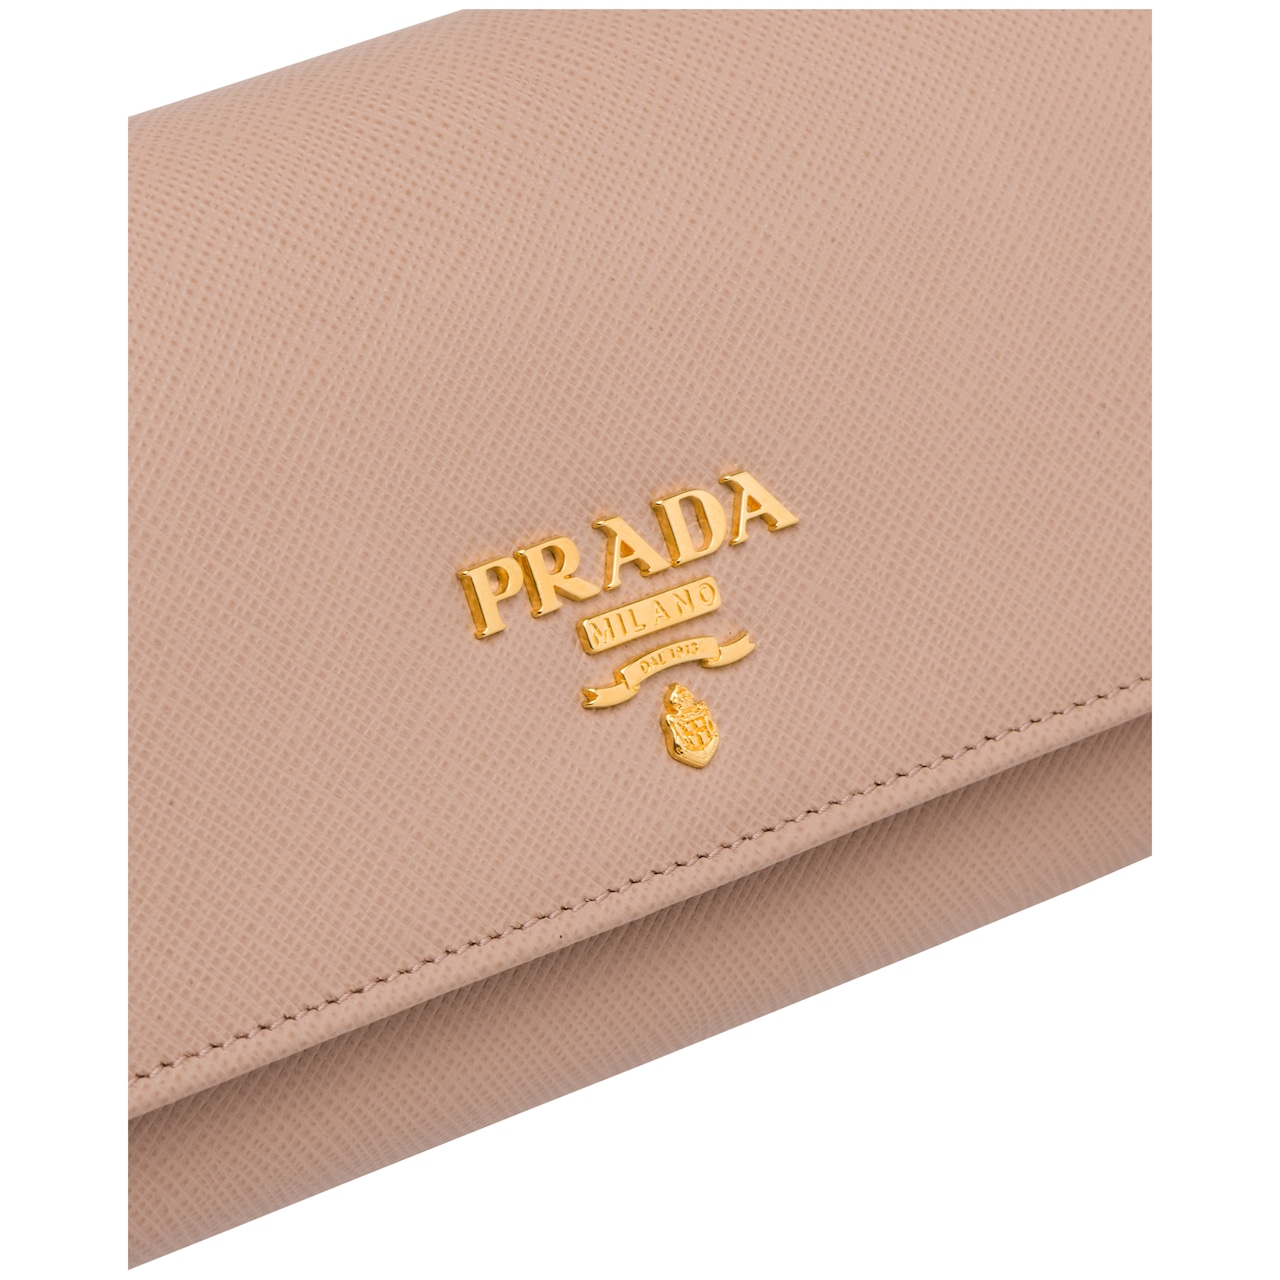 Prada Leather Wallet 6